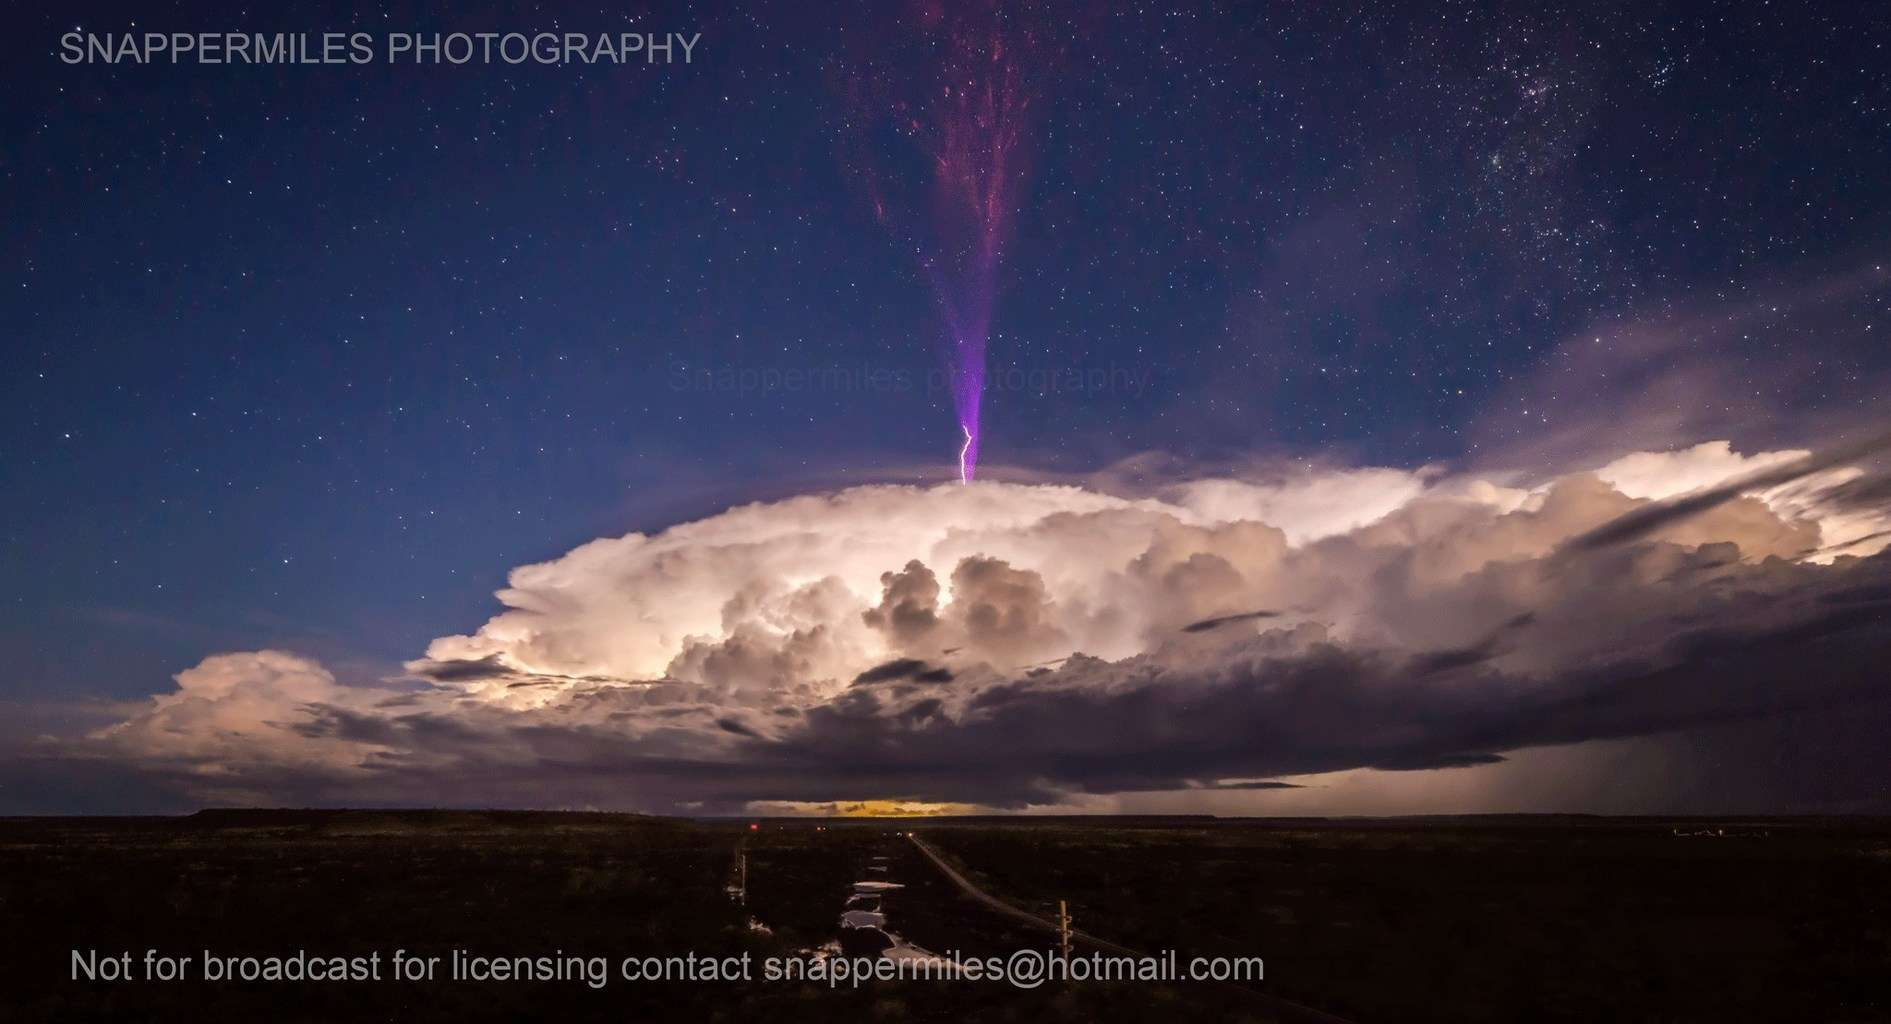 GIGANTIC JETS a form of ionospheric lightning that is rarely captured by camera to put it into perspective this was captured on a nikon d800 and 14mm samyung and is not croppe